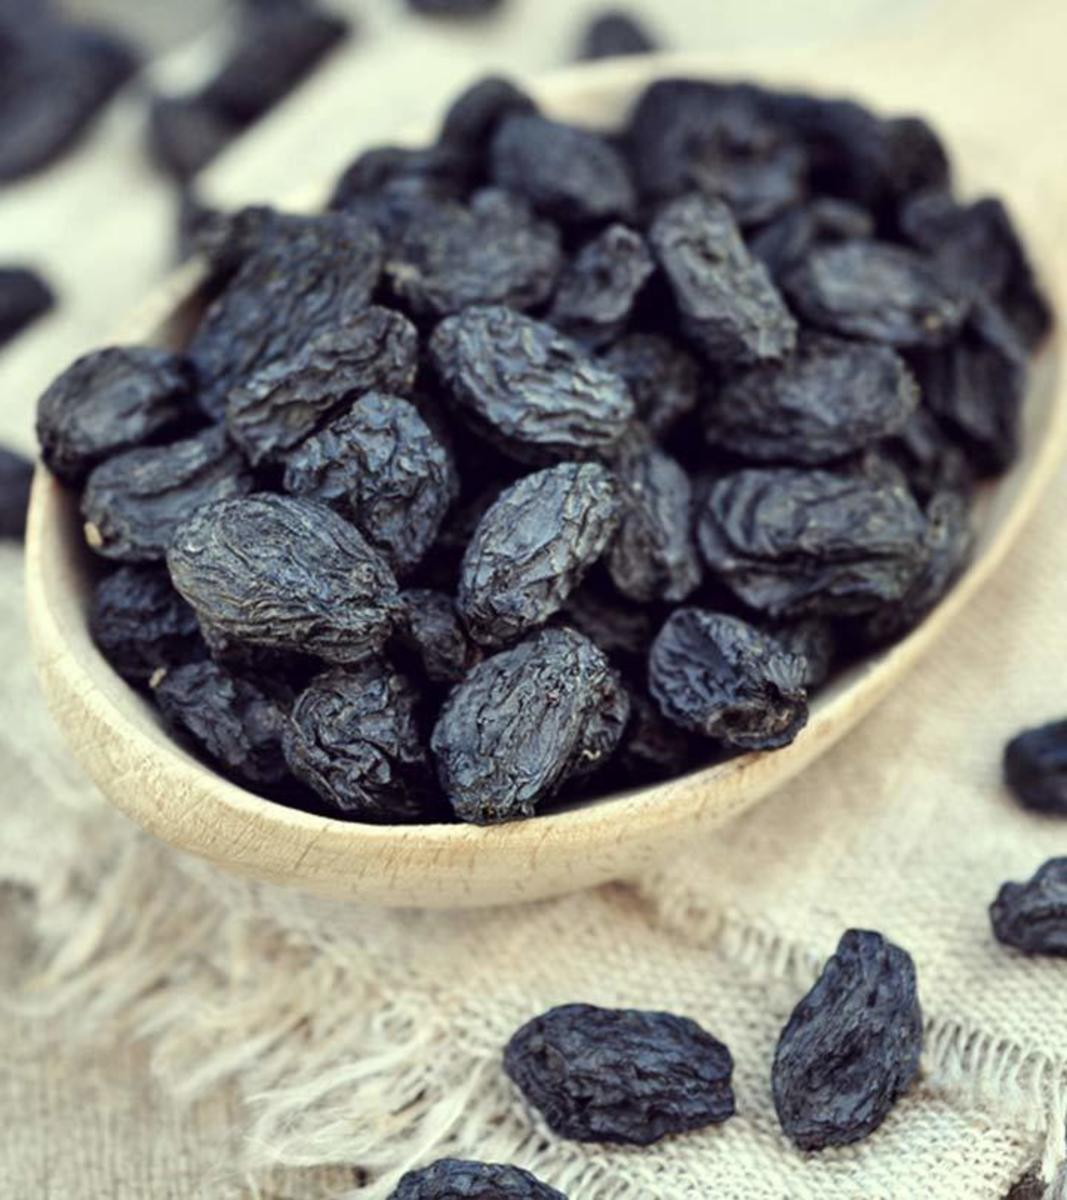 Black raisins are rich in iron and antioxidants.